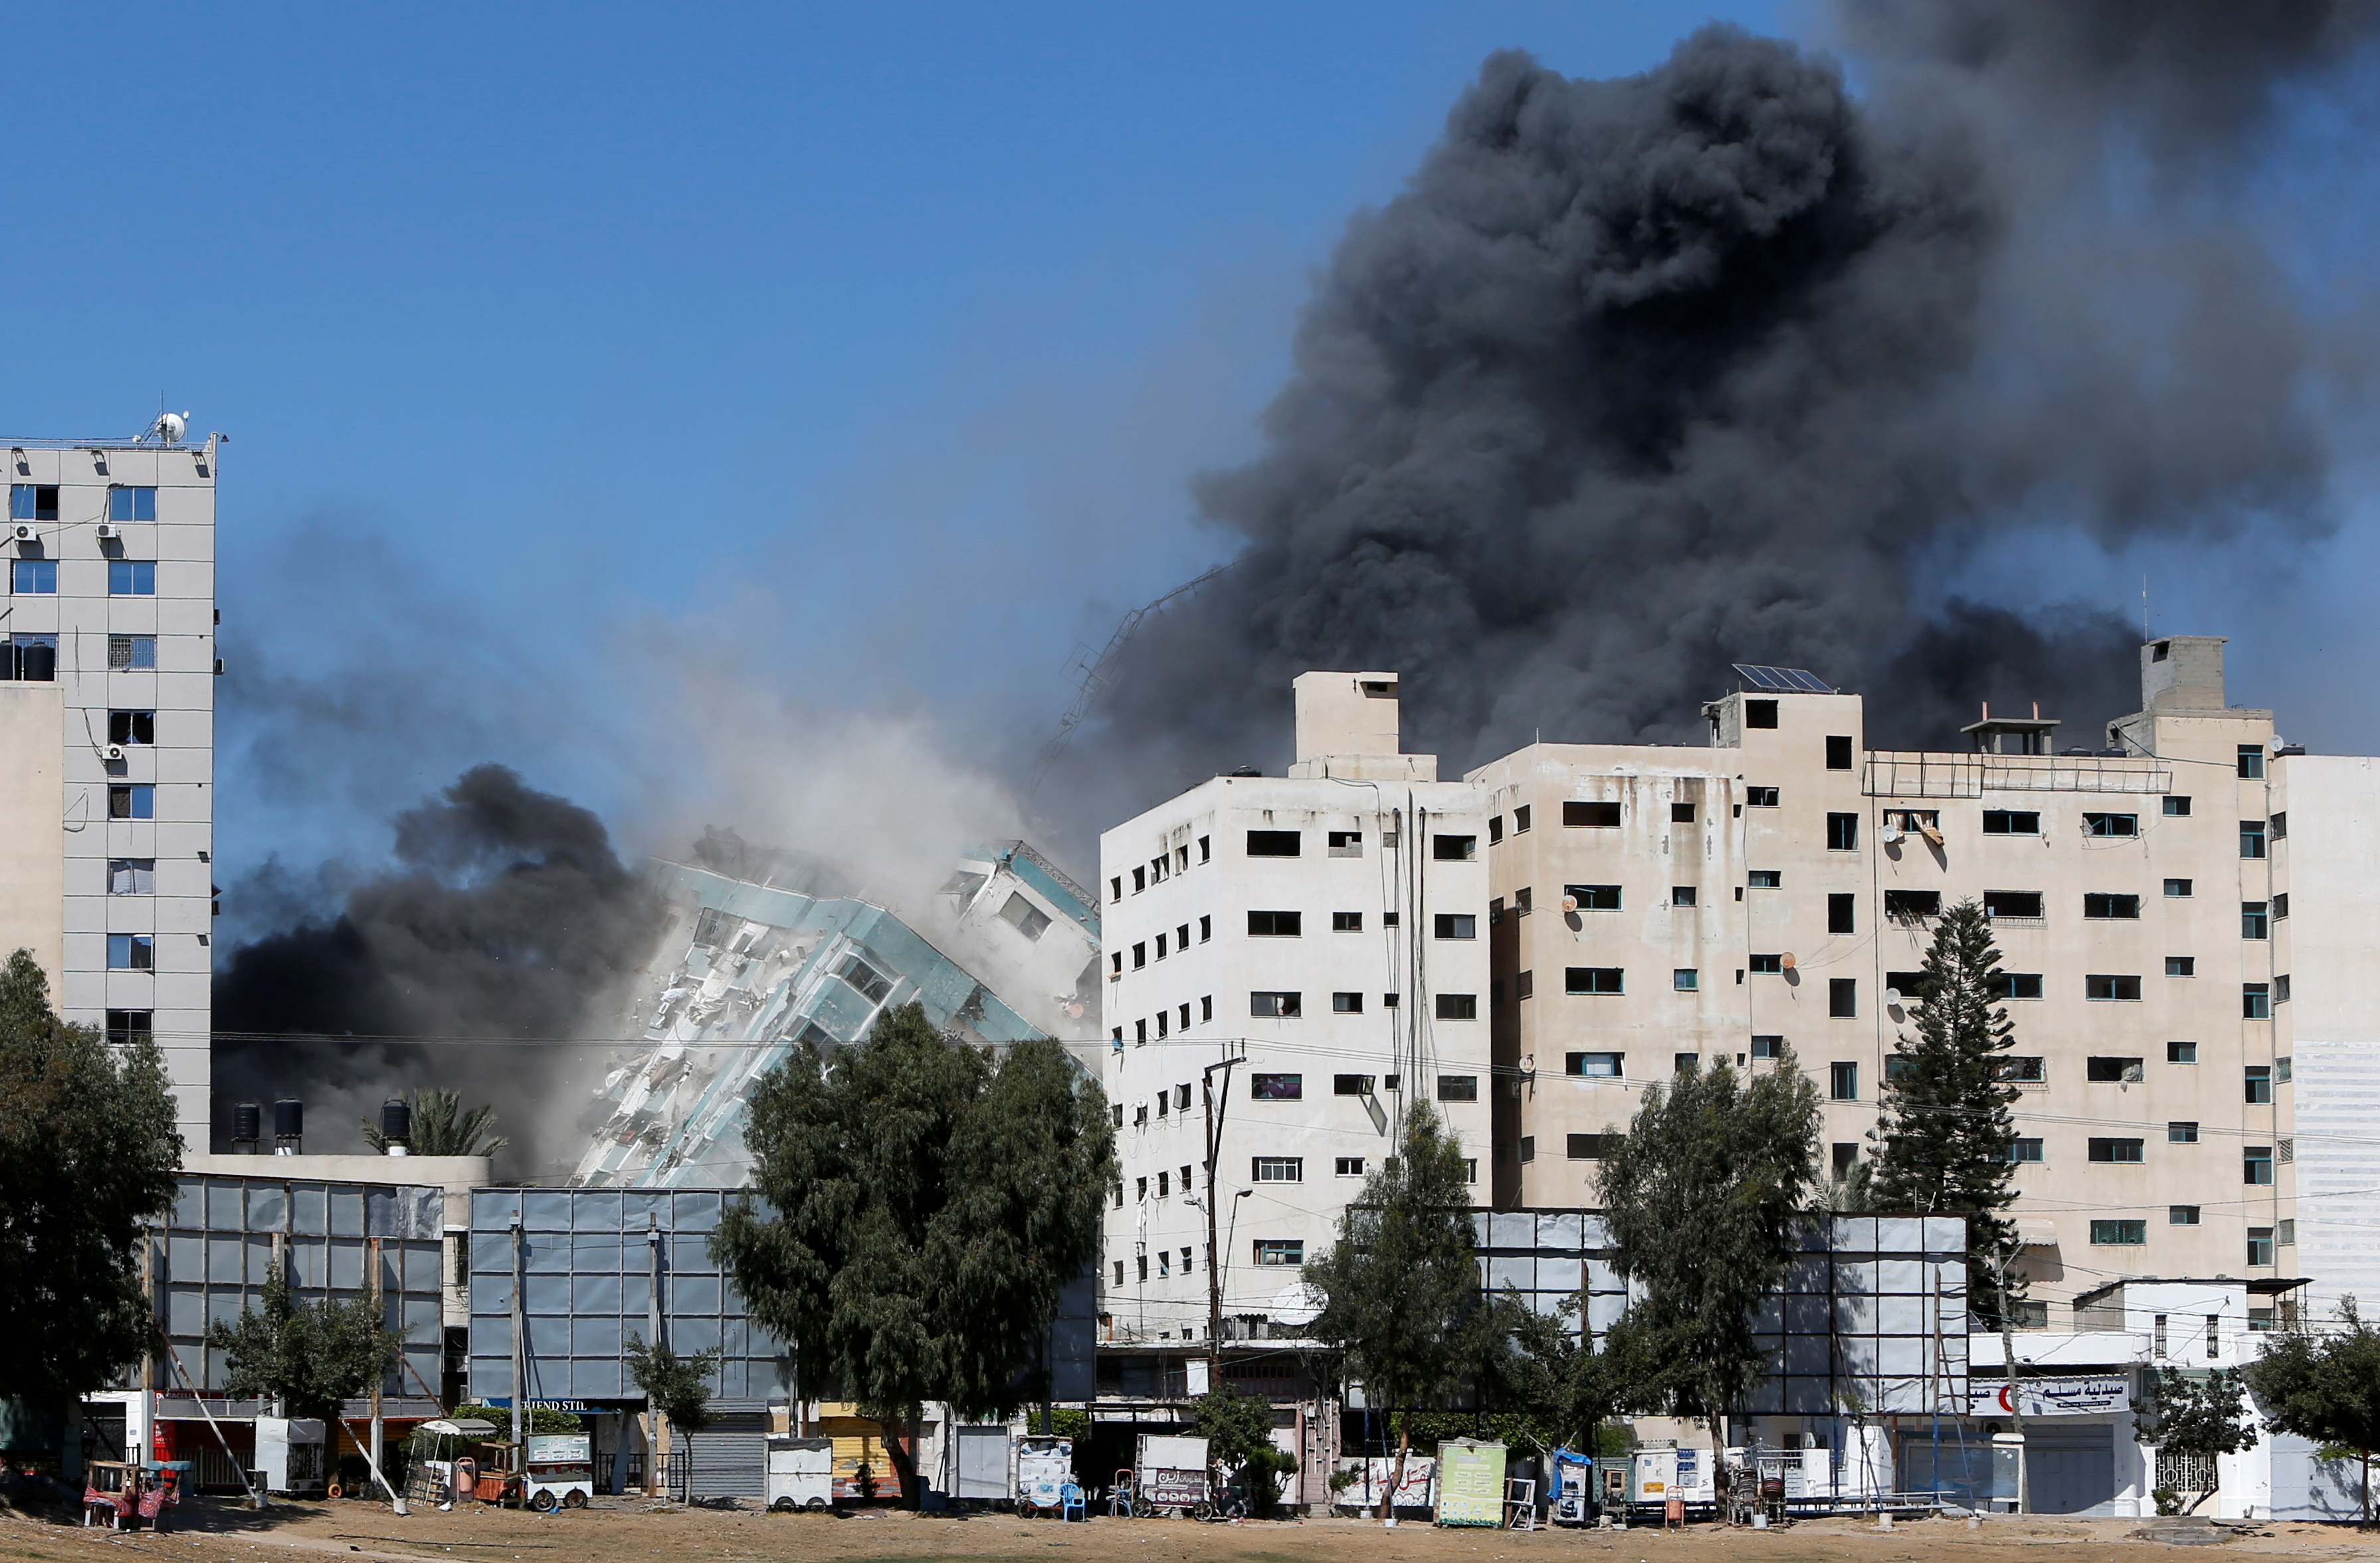 Gaza tower housing AP, Al Jazeera collapses after missile strike in Gaza city, May 15, 2021. REUTERS/Mohammed Salem